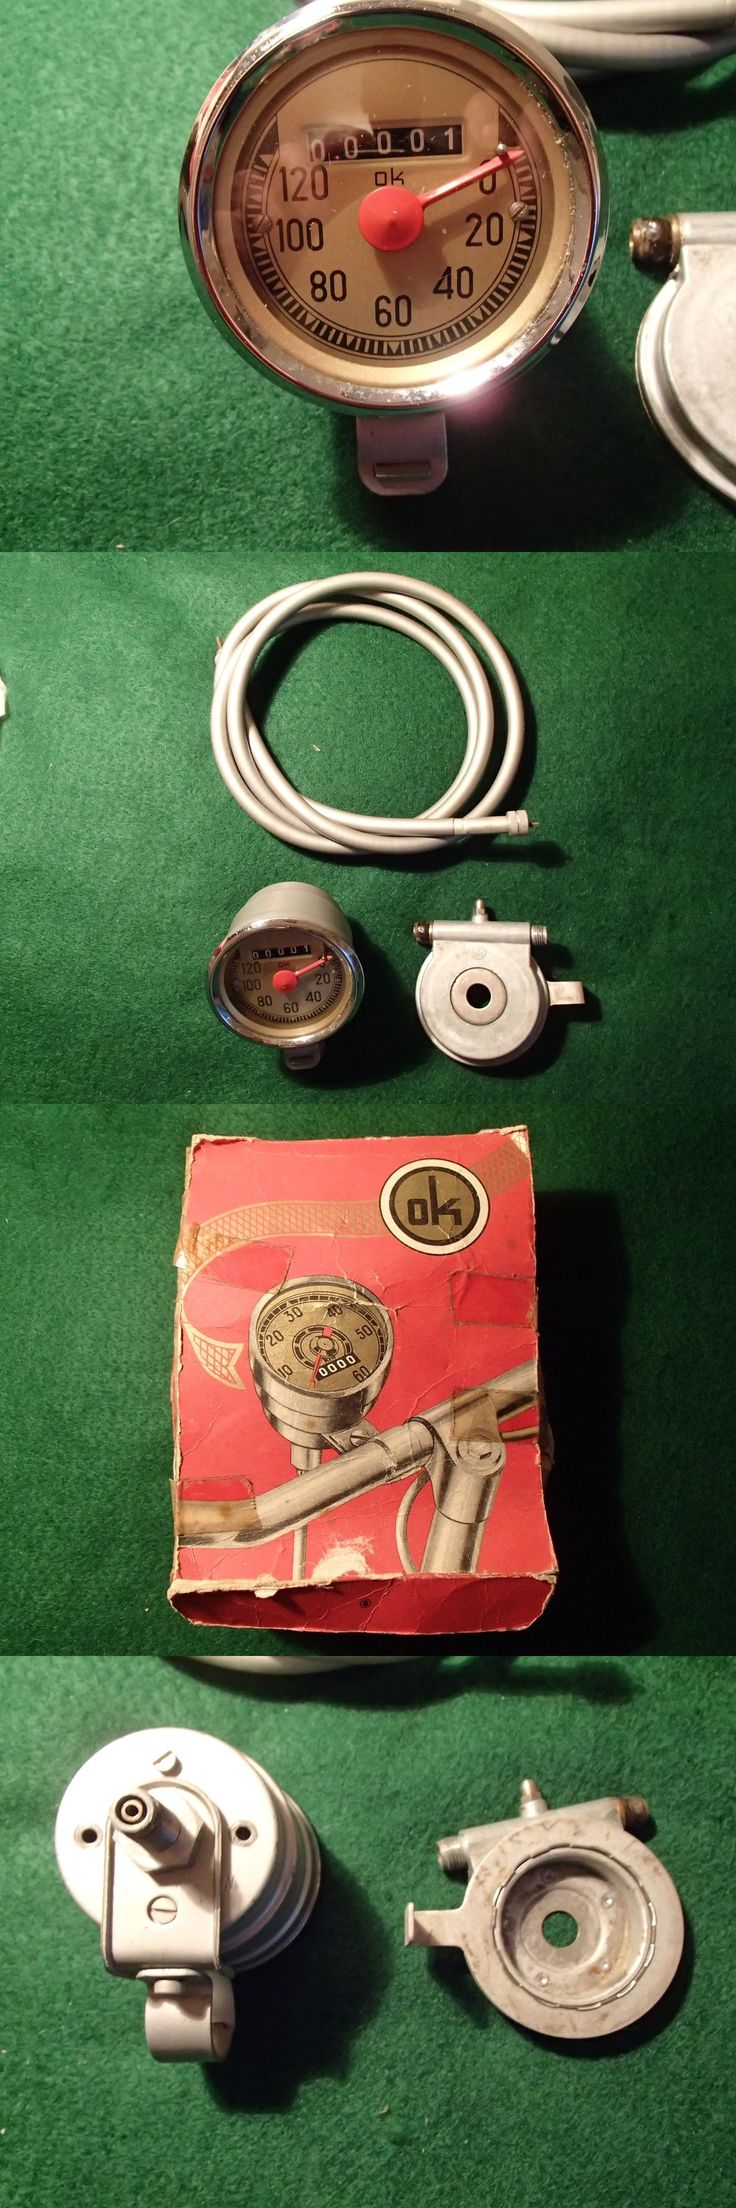 Vintage Bicycle Parts 56197: Vintage Ok Brand French Speedometer Kit (Nos) -> BUY IT NOW ONLY: $47.5 on eBay!